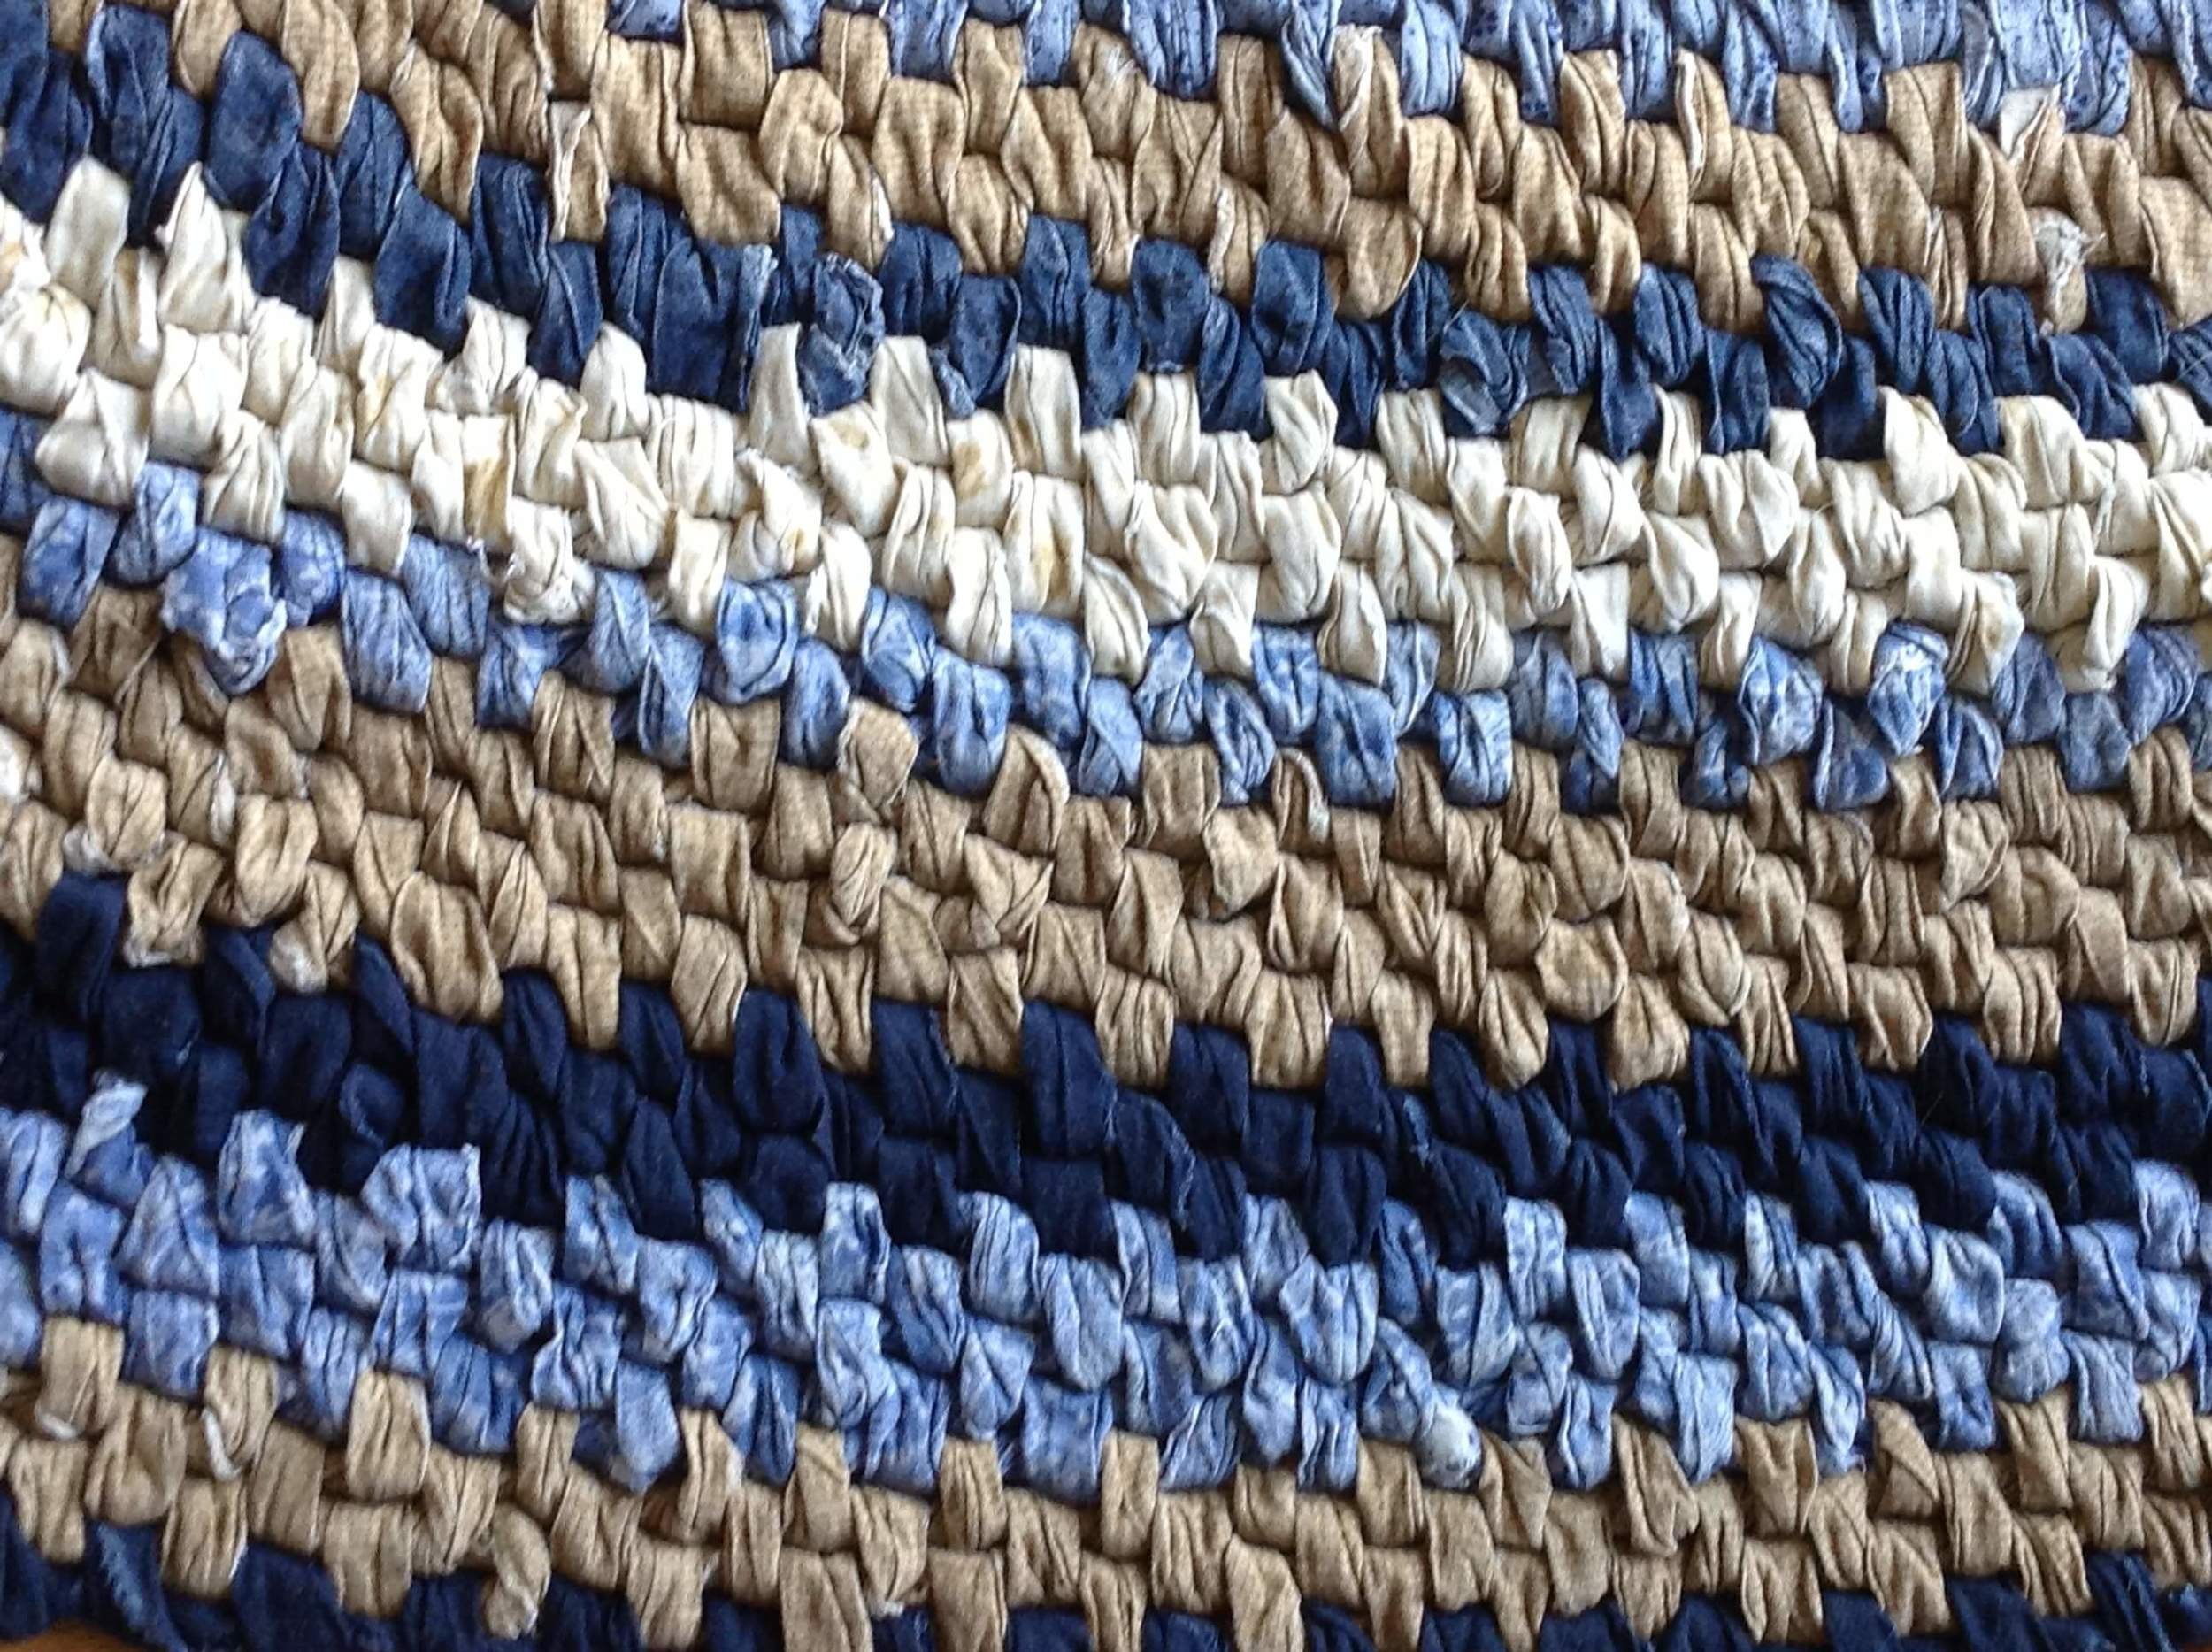 Rag Rugs require a LOT of fabric and that can be expensive.  I have some ideas on where to find cheap fabric - DaytoDayAdventures.com